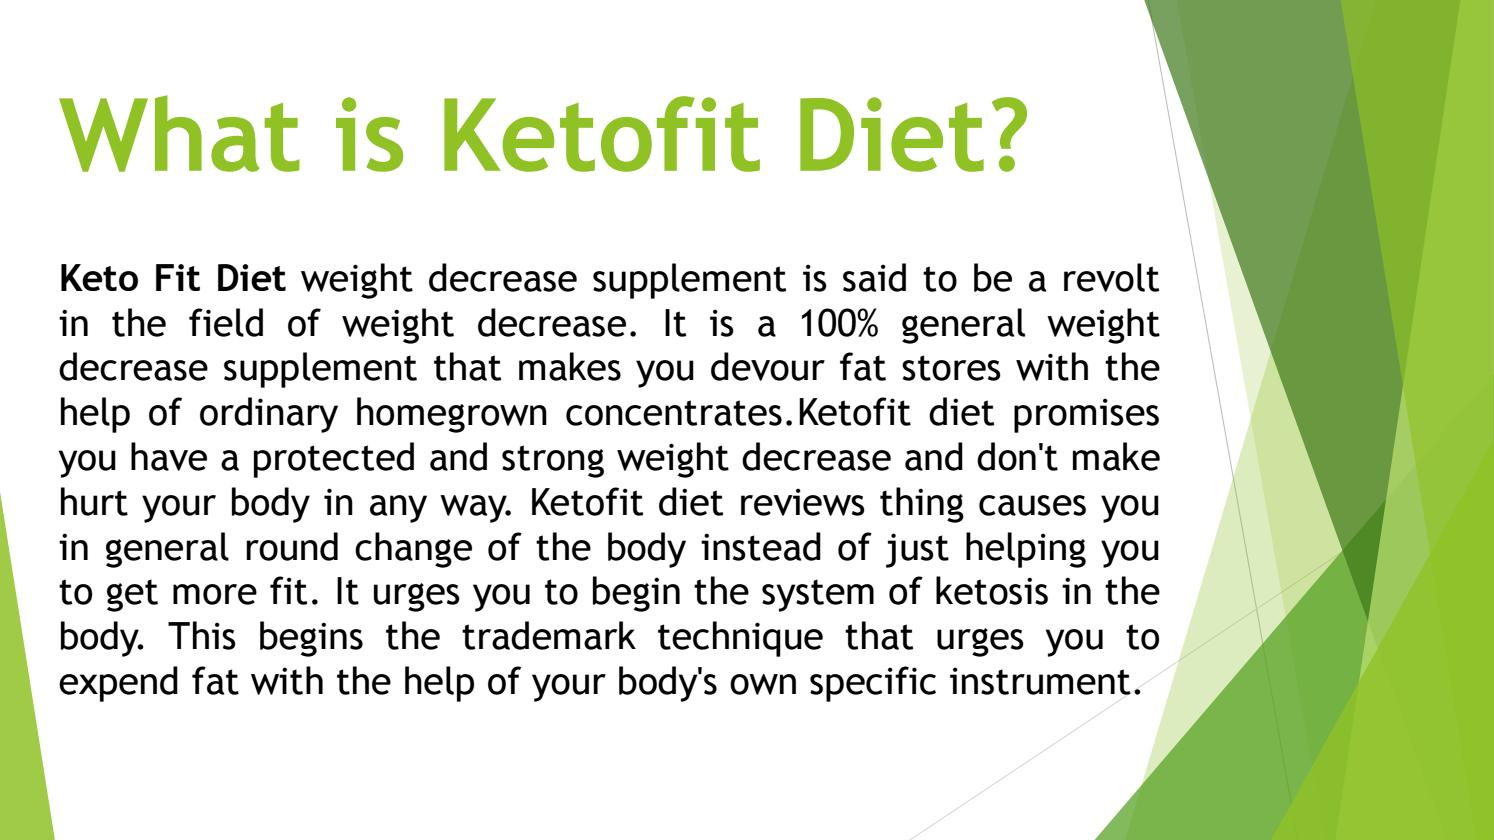 Keto Fit Reviews Weight Loss Diet Pills Uk By Ketofit Uk Issuu